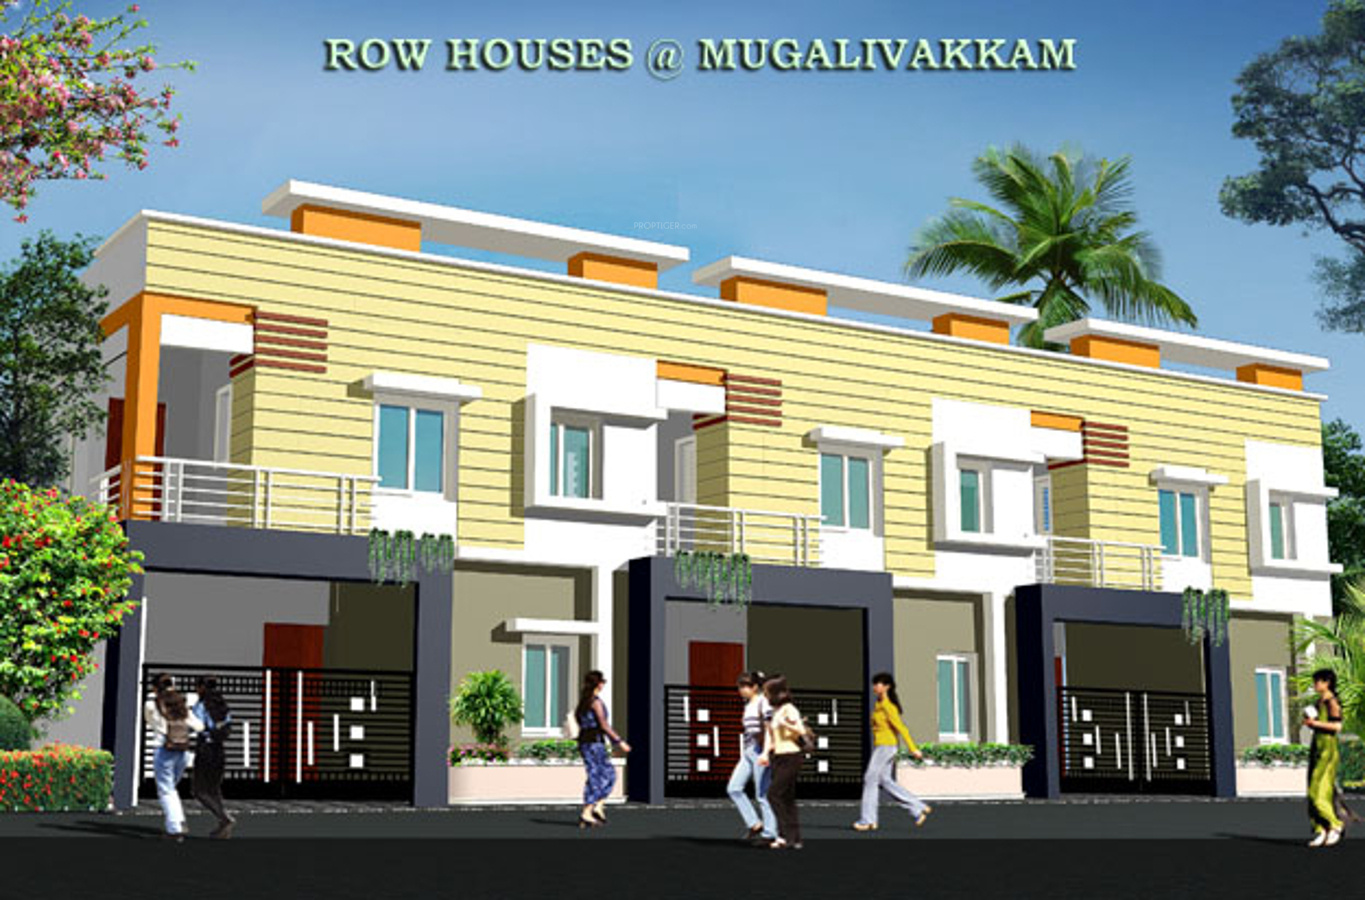 Front Elevation Of Row Houses : Rajeswari infrastructure row house in mugalivakkam